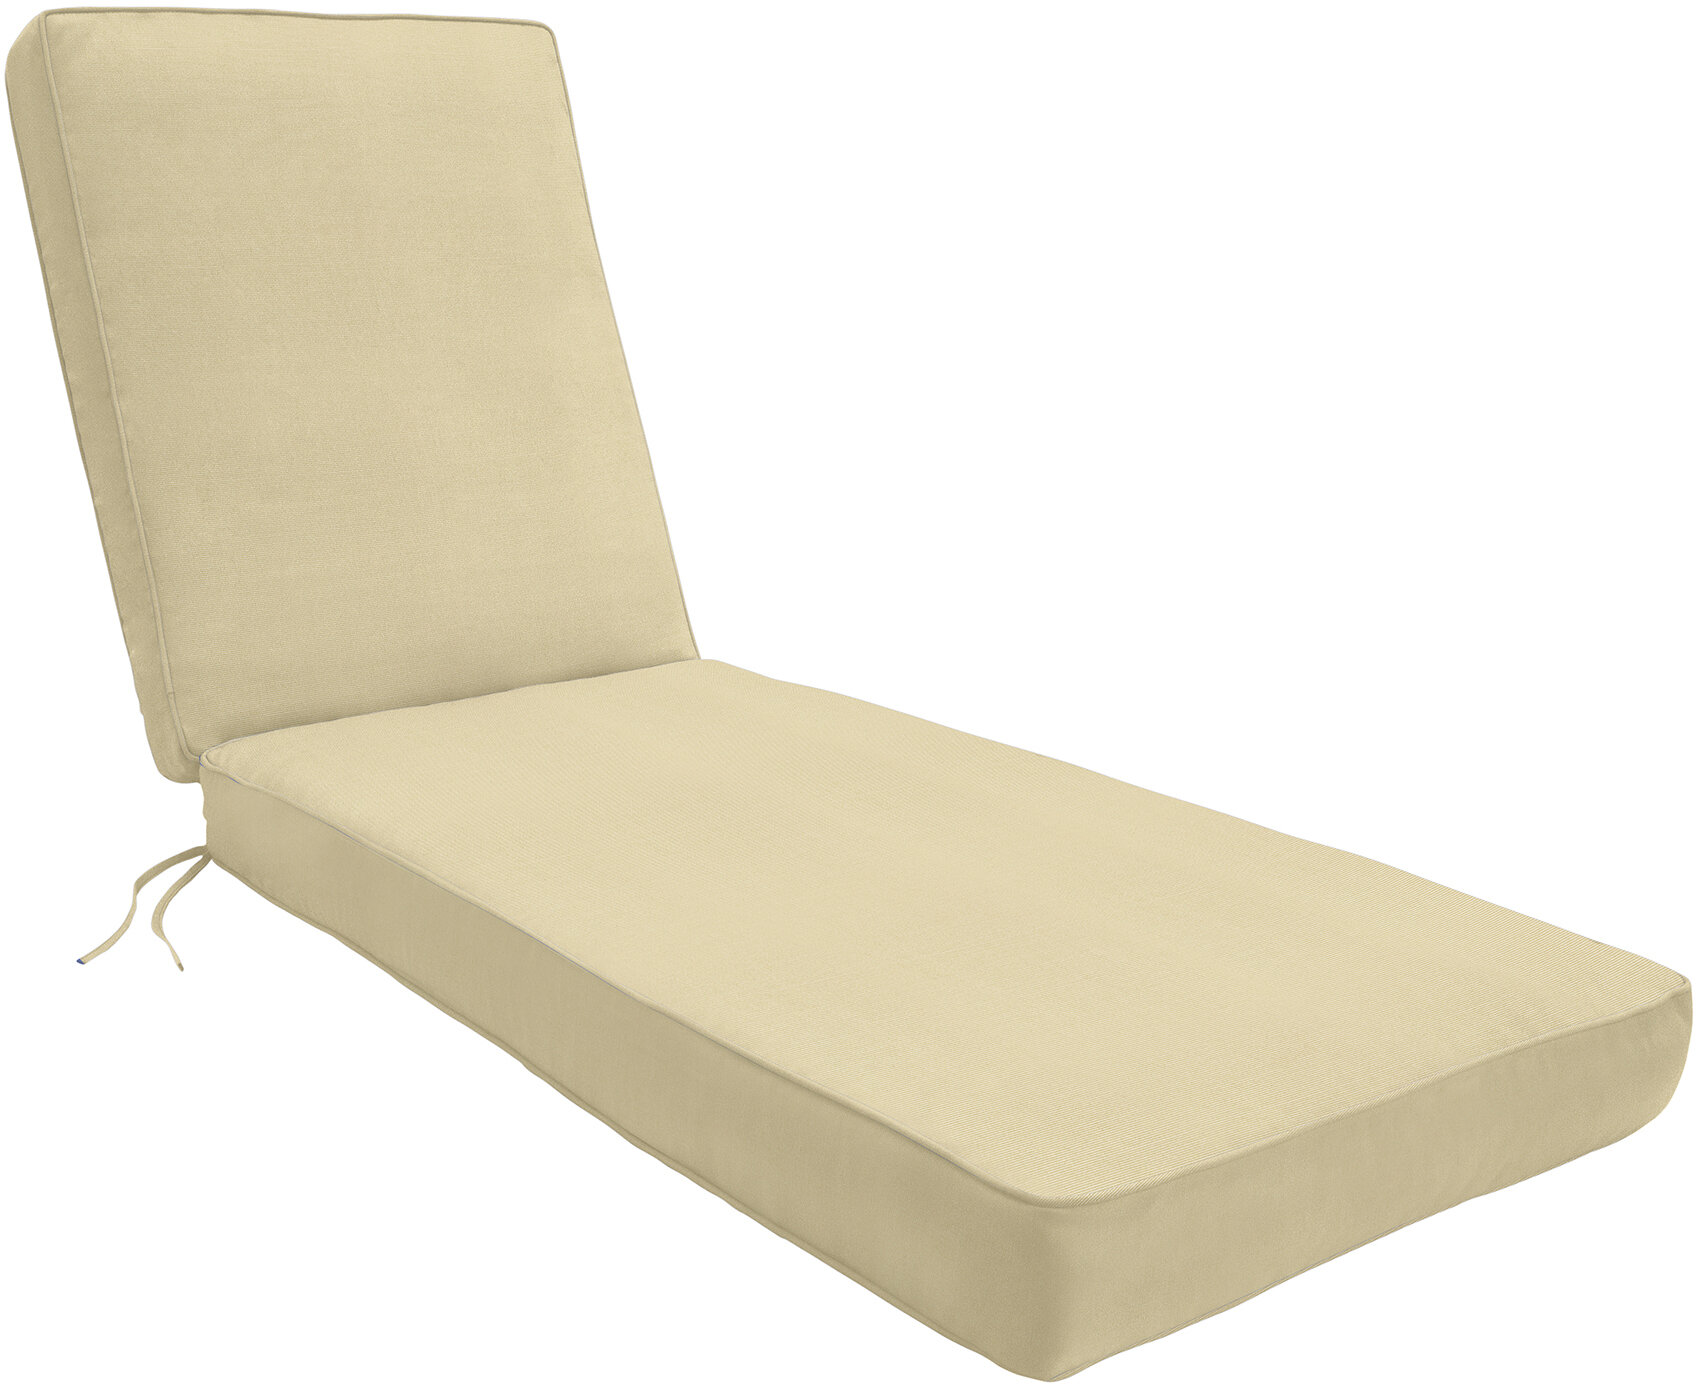 outside concept chaise lounge outdoor of sale chair cushion outstanding chairs clearance cushions on x size jacksonville photo full saleoutdoor